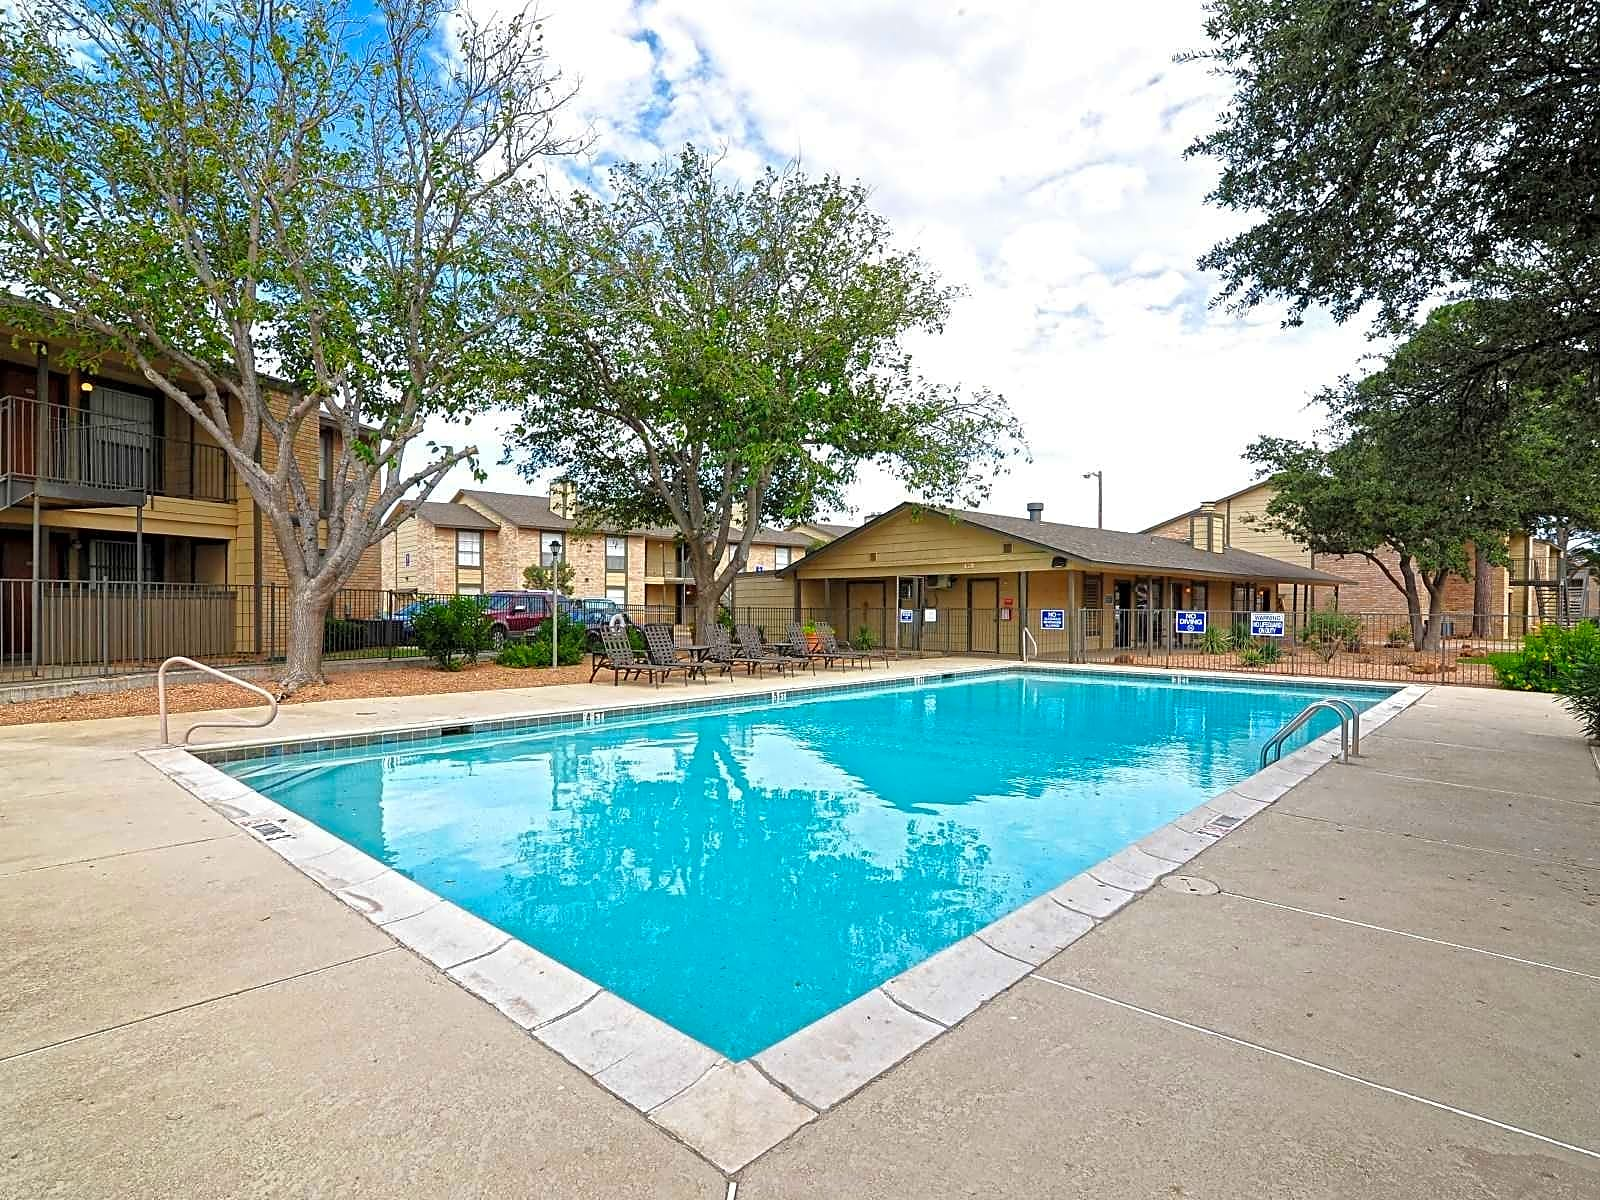 Apartments Near UTPB Woodview Apartments for The University of Texas of the Permian Basin Students in Odessa, TX